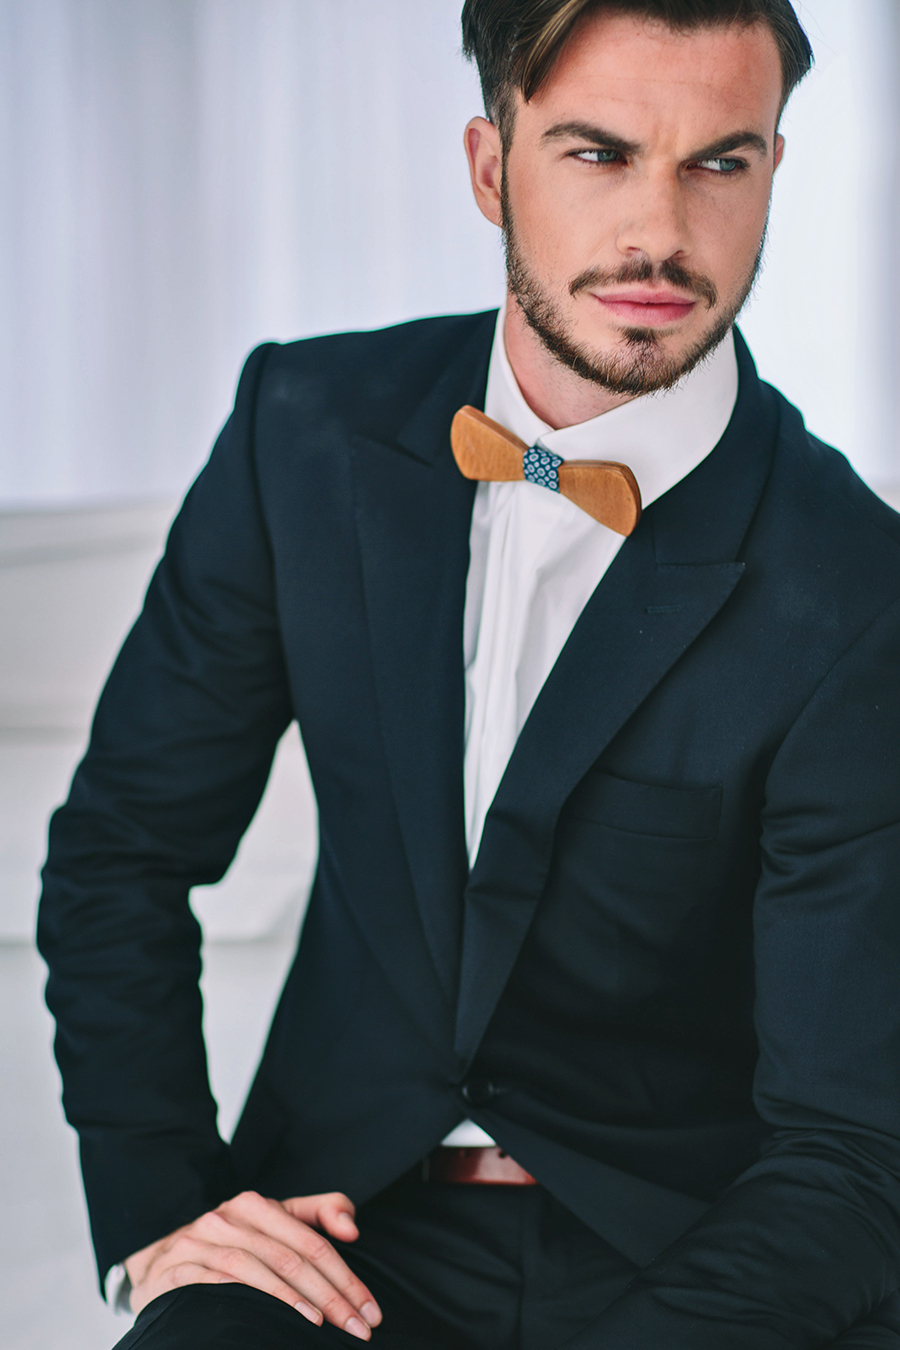 wooden-wedding-bow-tie-george-pahountis-photographer